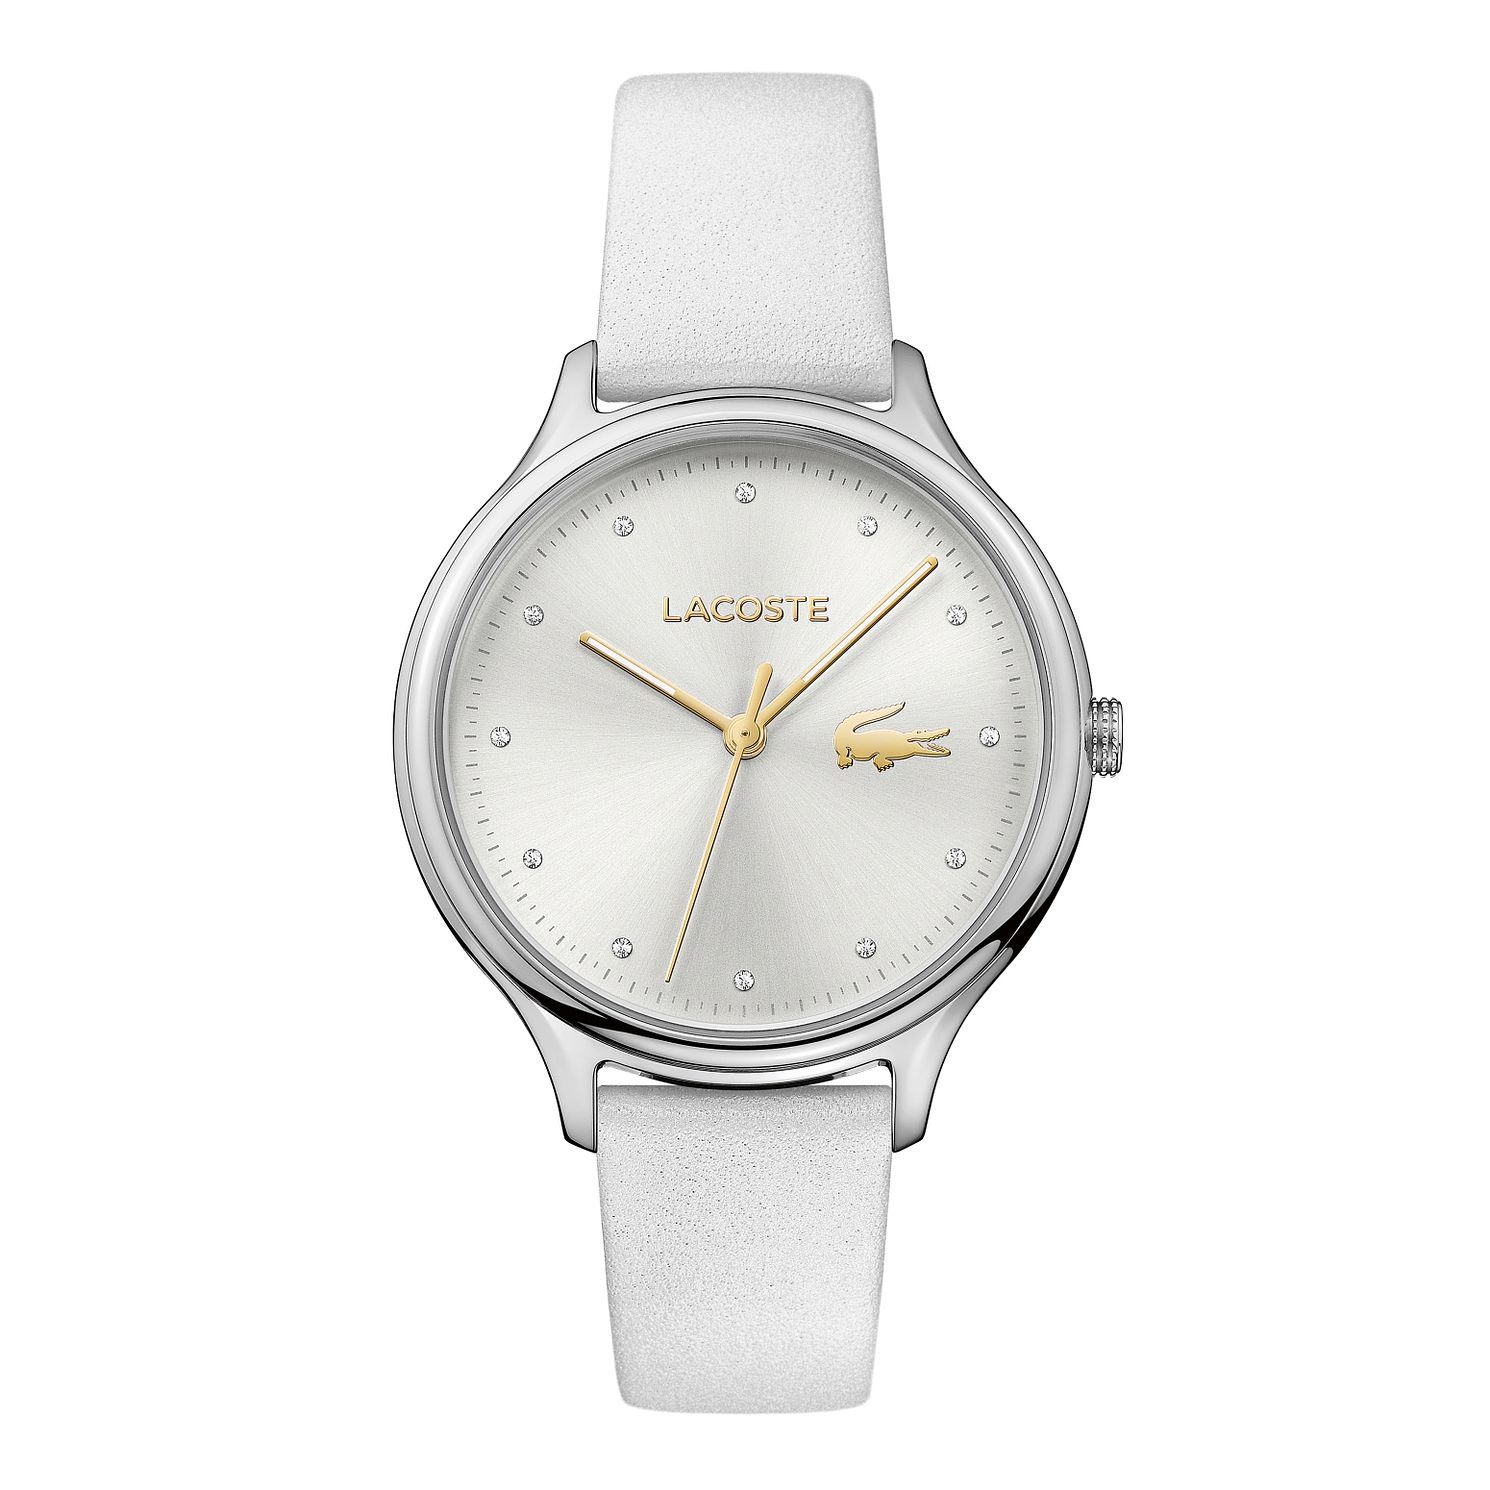 Lacoste Ladies' White Leather Strap Watch - Product number 3186512